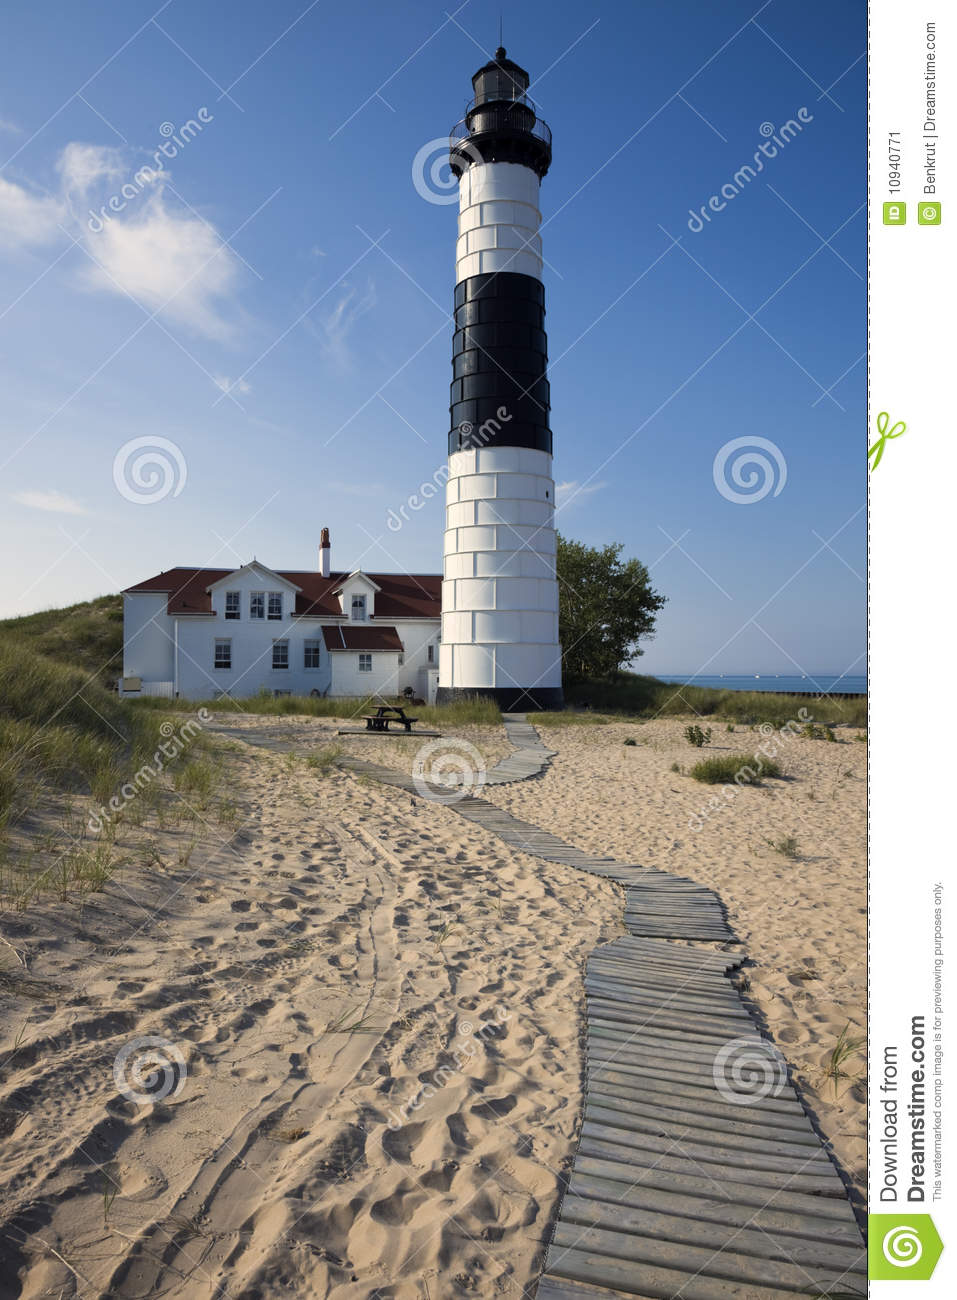 big sable point lighthouse stock image image of station 10940771. Black Bedroom Furniture Sets. Home Design Ideas